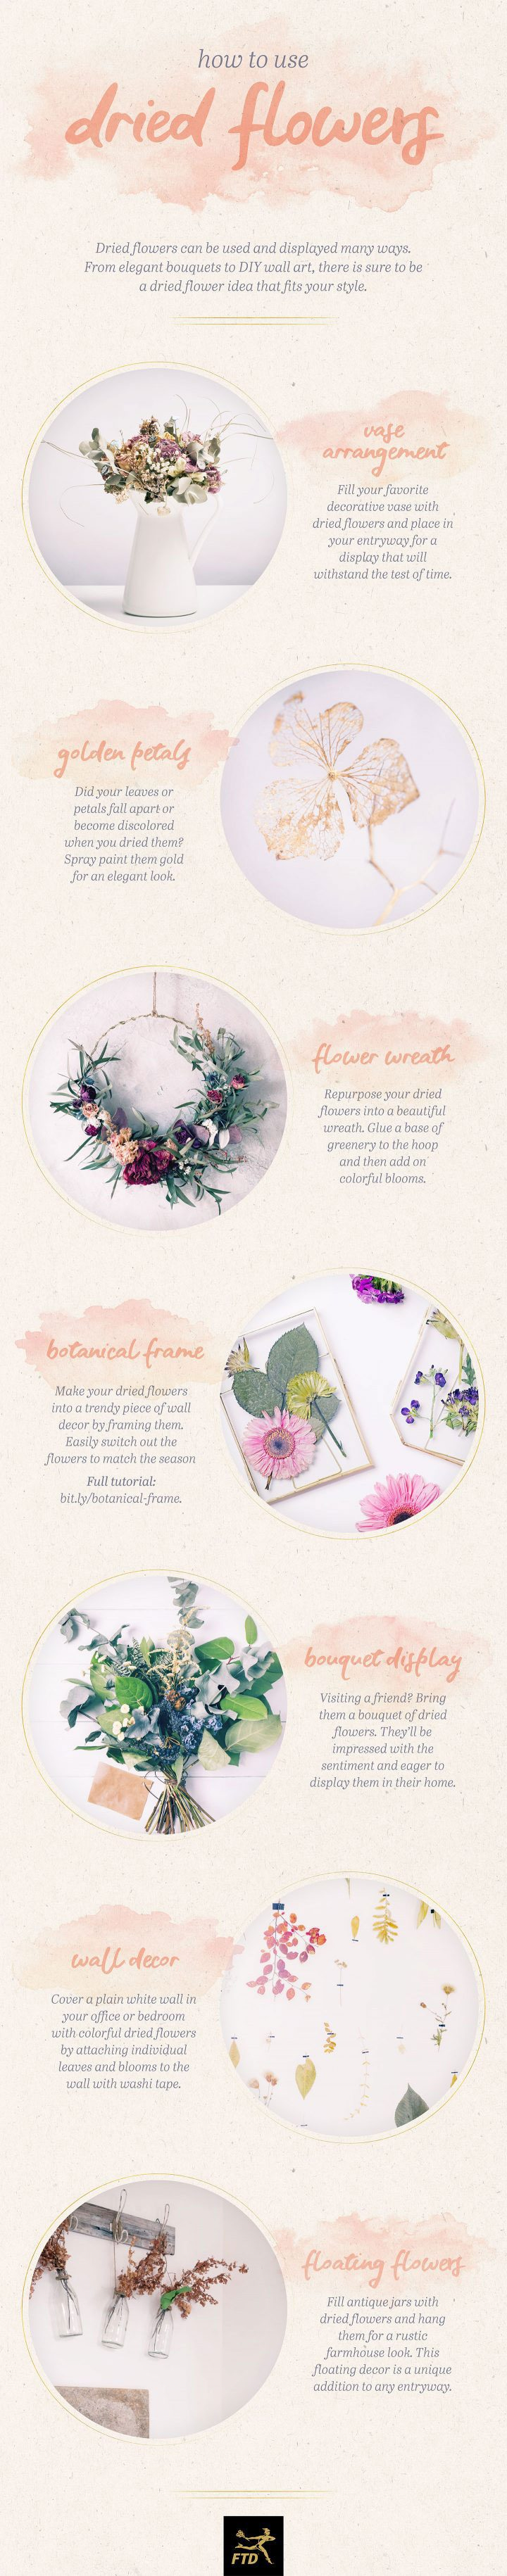 dried flower arrangement ideas infographic